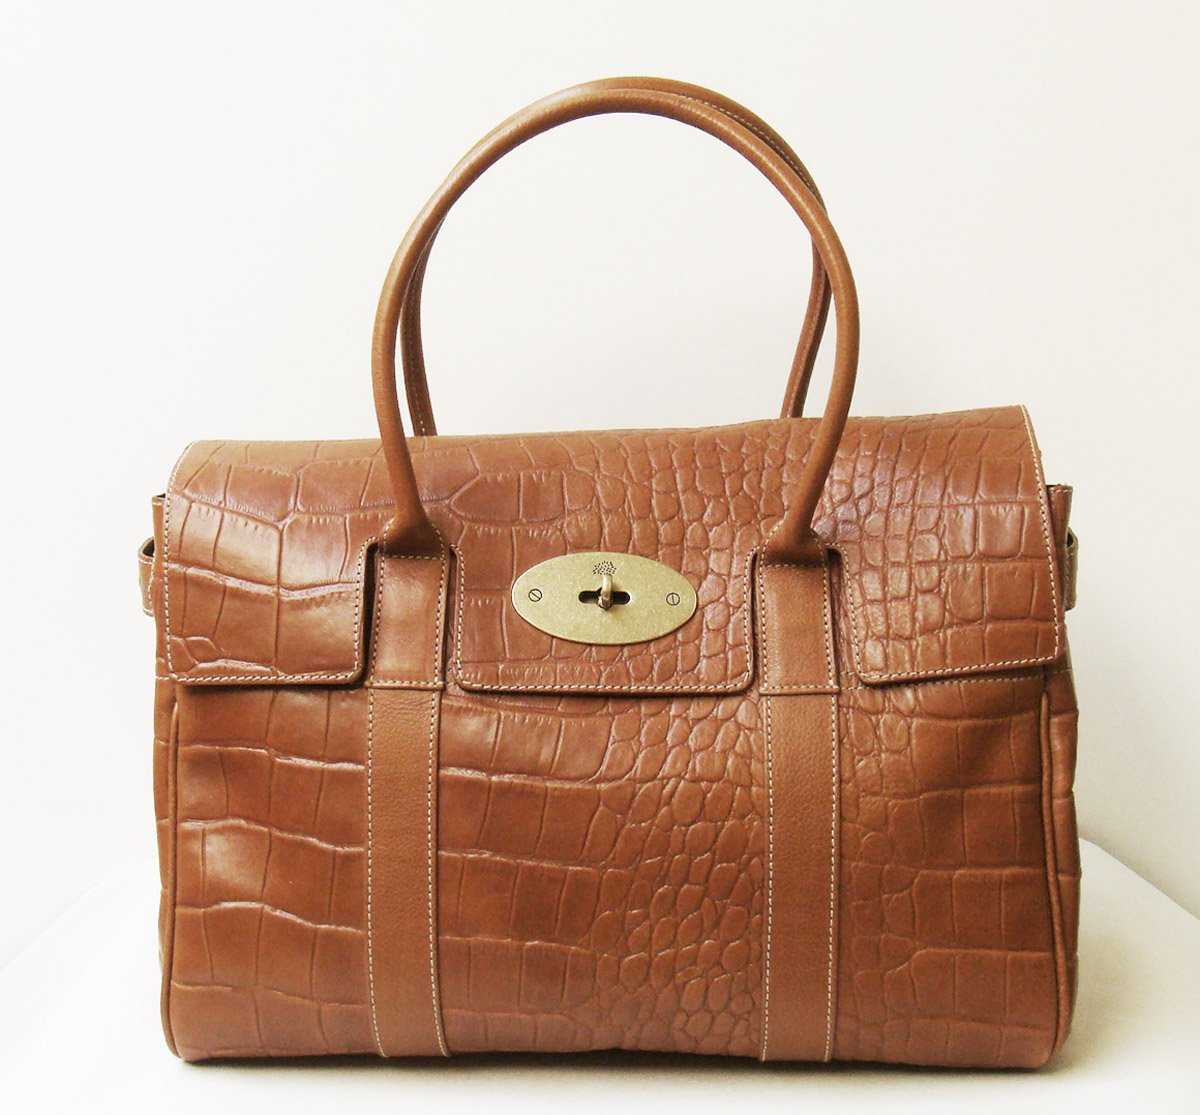 37a73873566 Amazon.com  Mulberry Bayswater Crocodile Effect Leather Satchel Tote Bag   Health   Personal Care